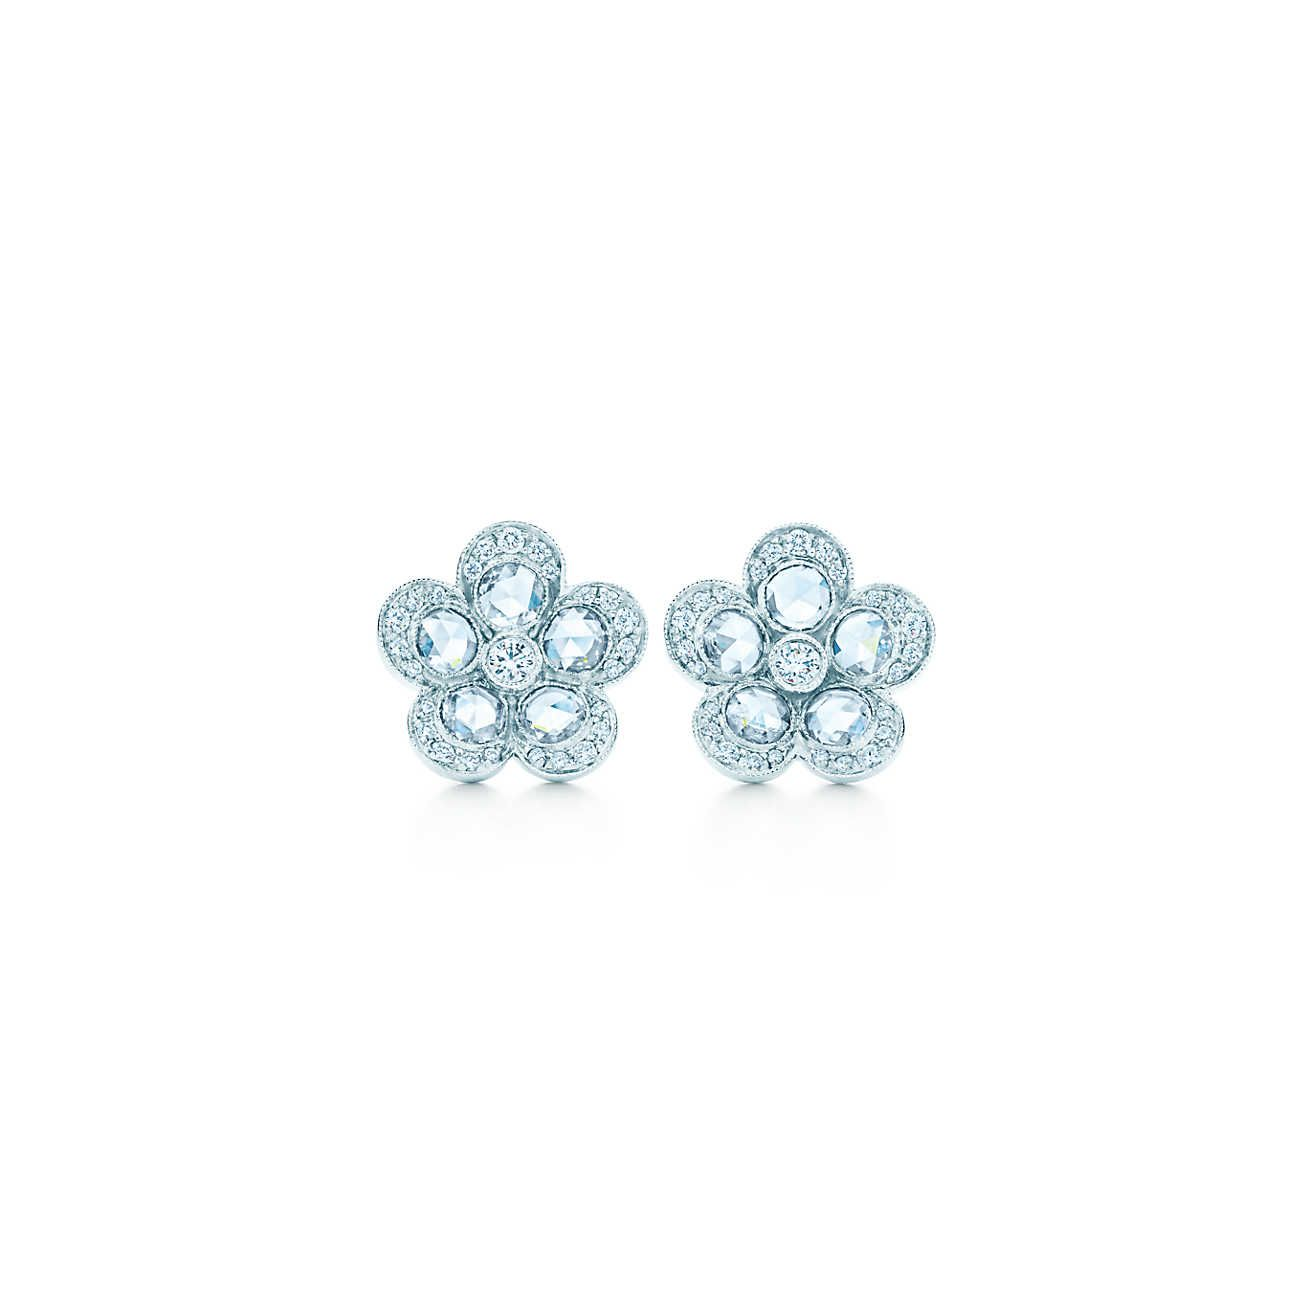 d5a8ad21e Flower Earrings   Jewelry and Watches   Flower earrings, Earrings ...